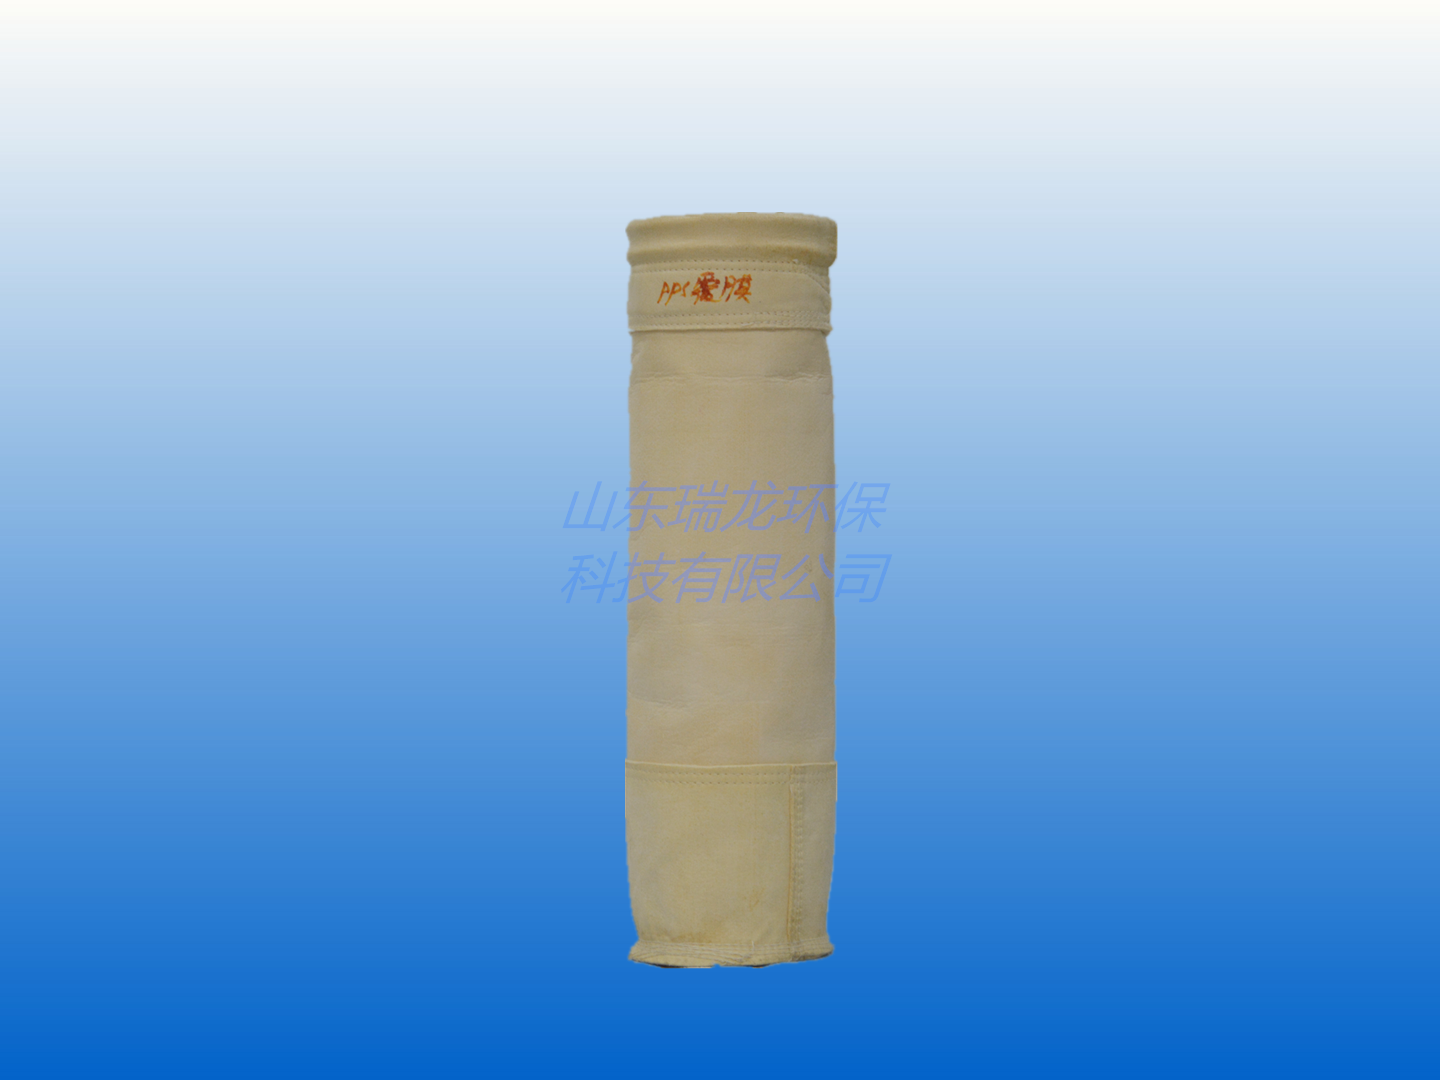 PPS耐酸碱针刺毡 PPS acid and alkali resistant needled felt